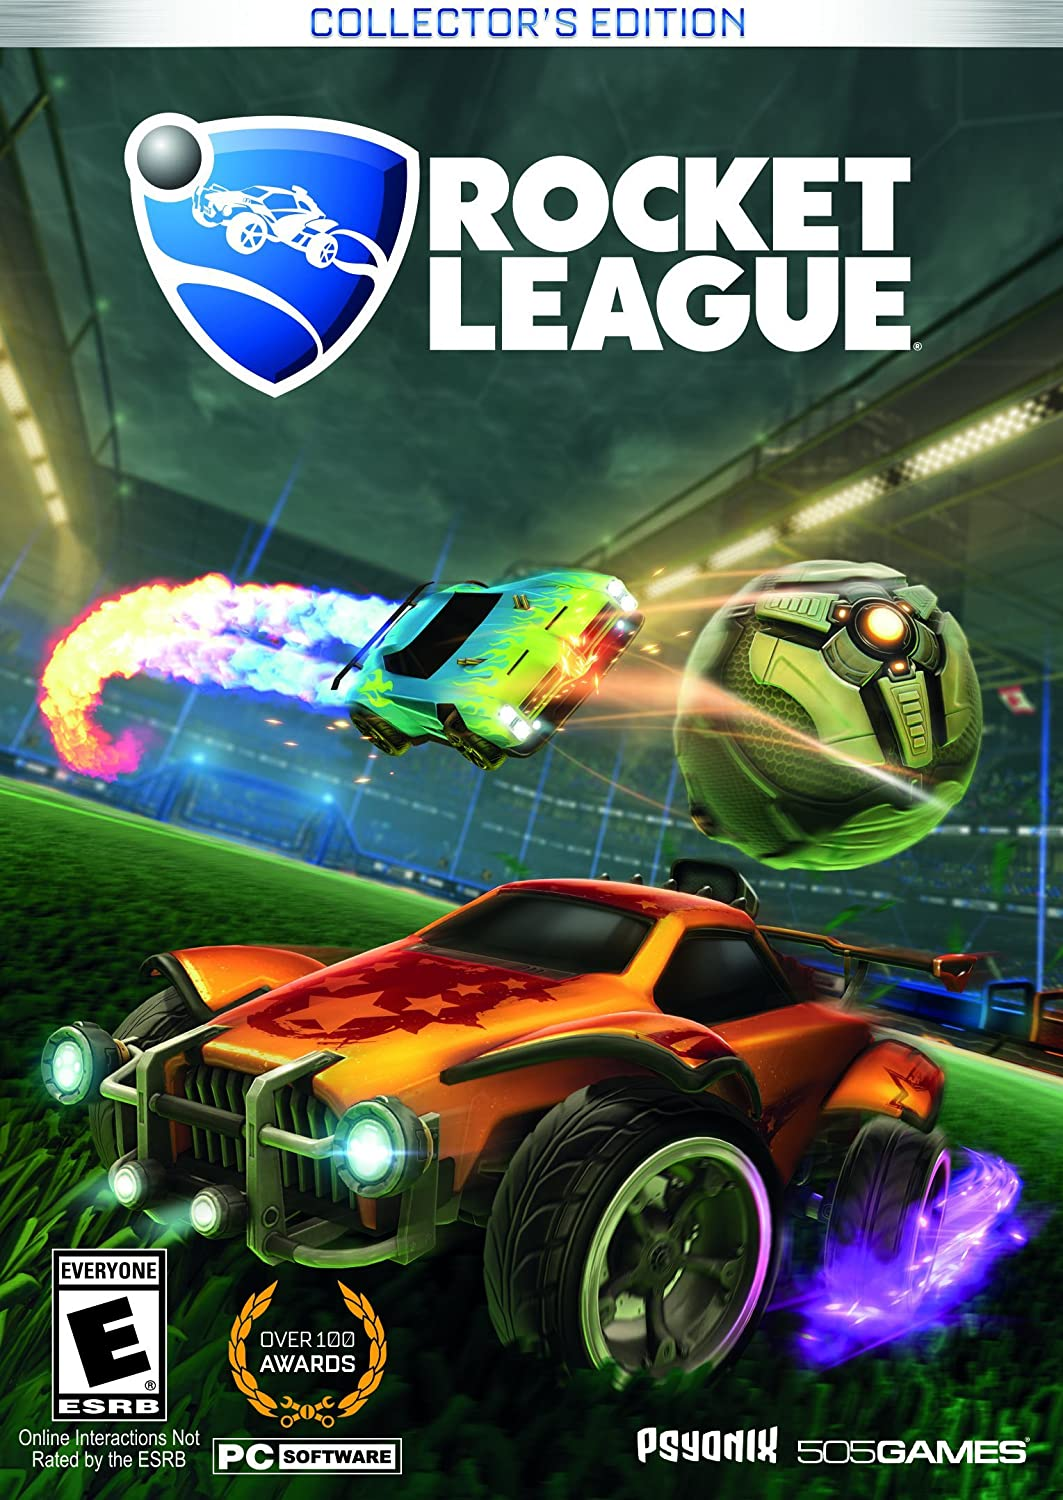 Buy Rocket League: Collector's Edition - PC Online at Low